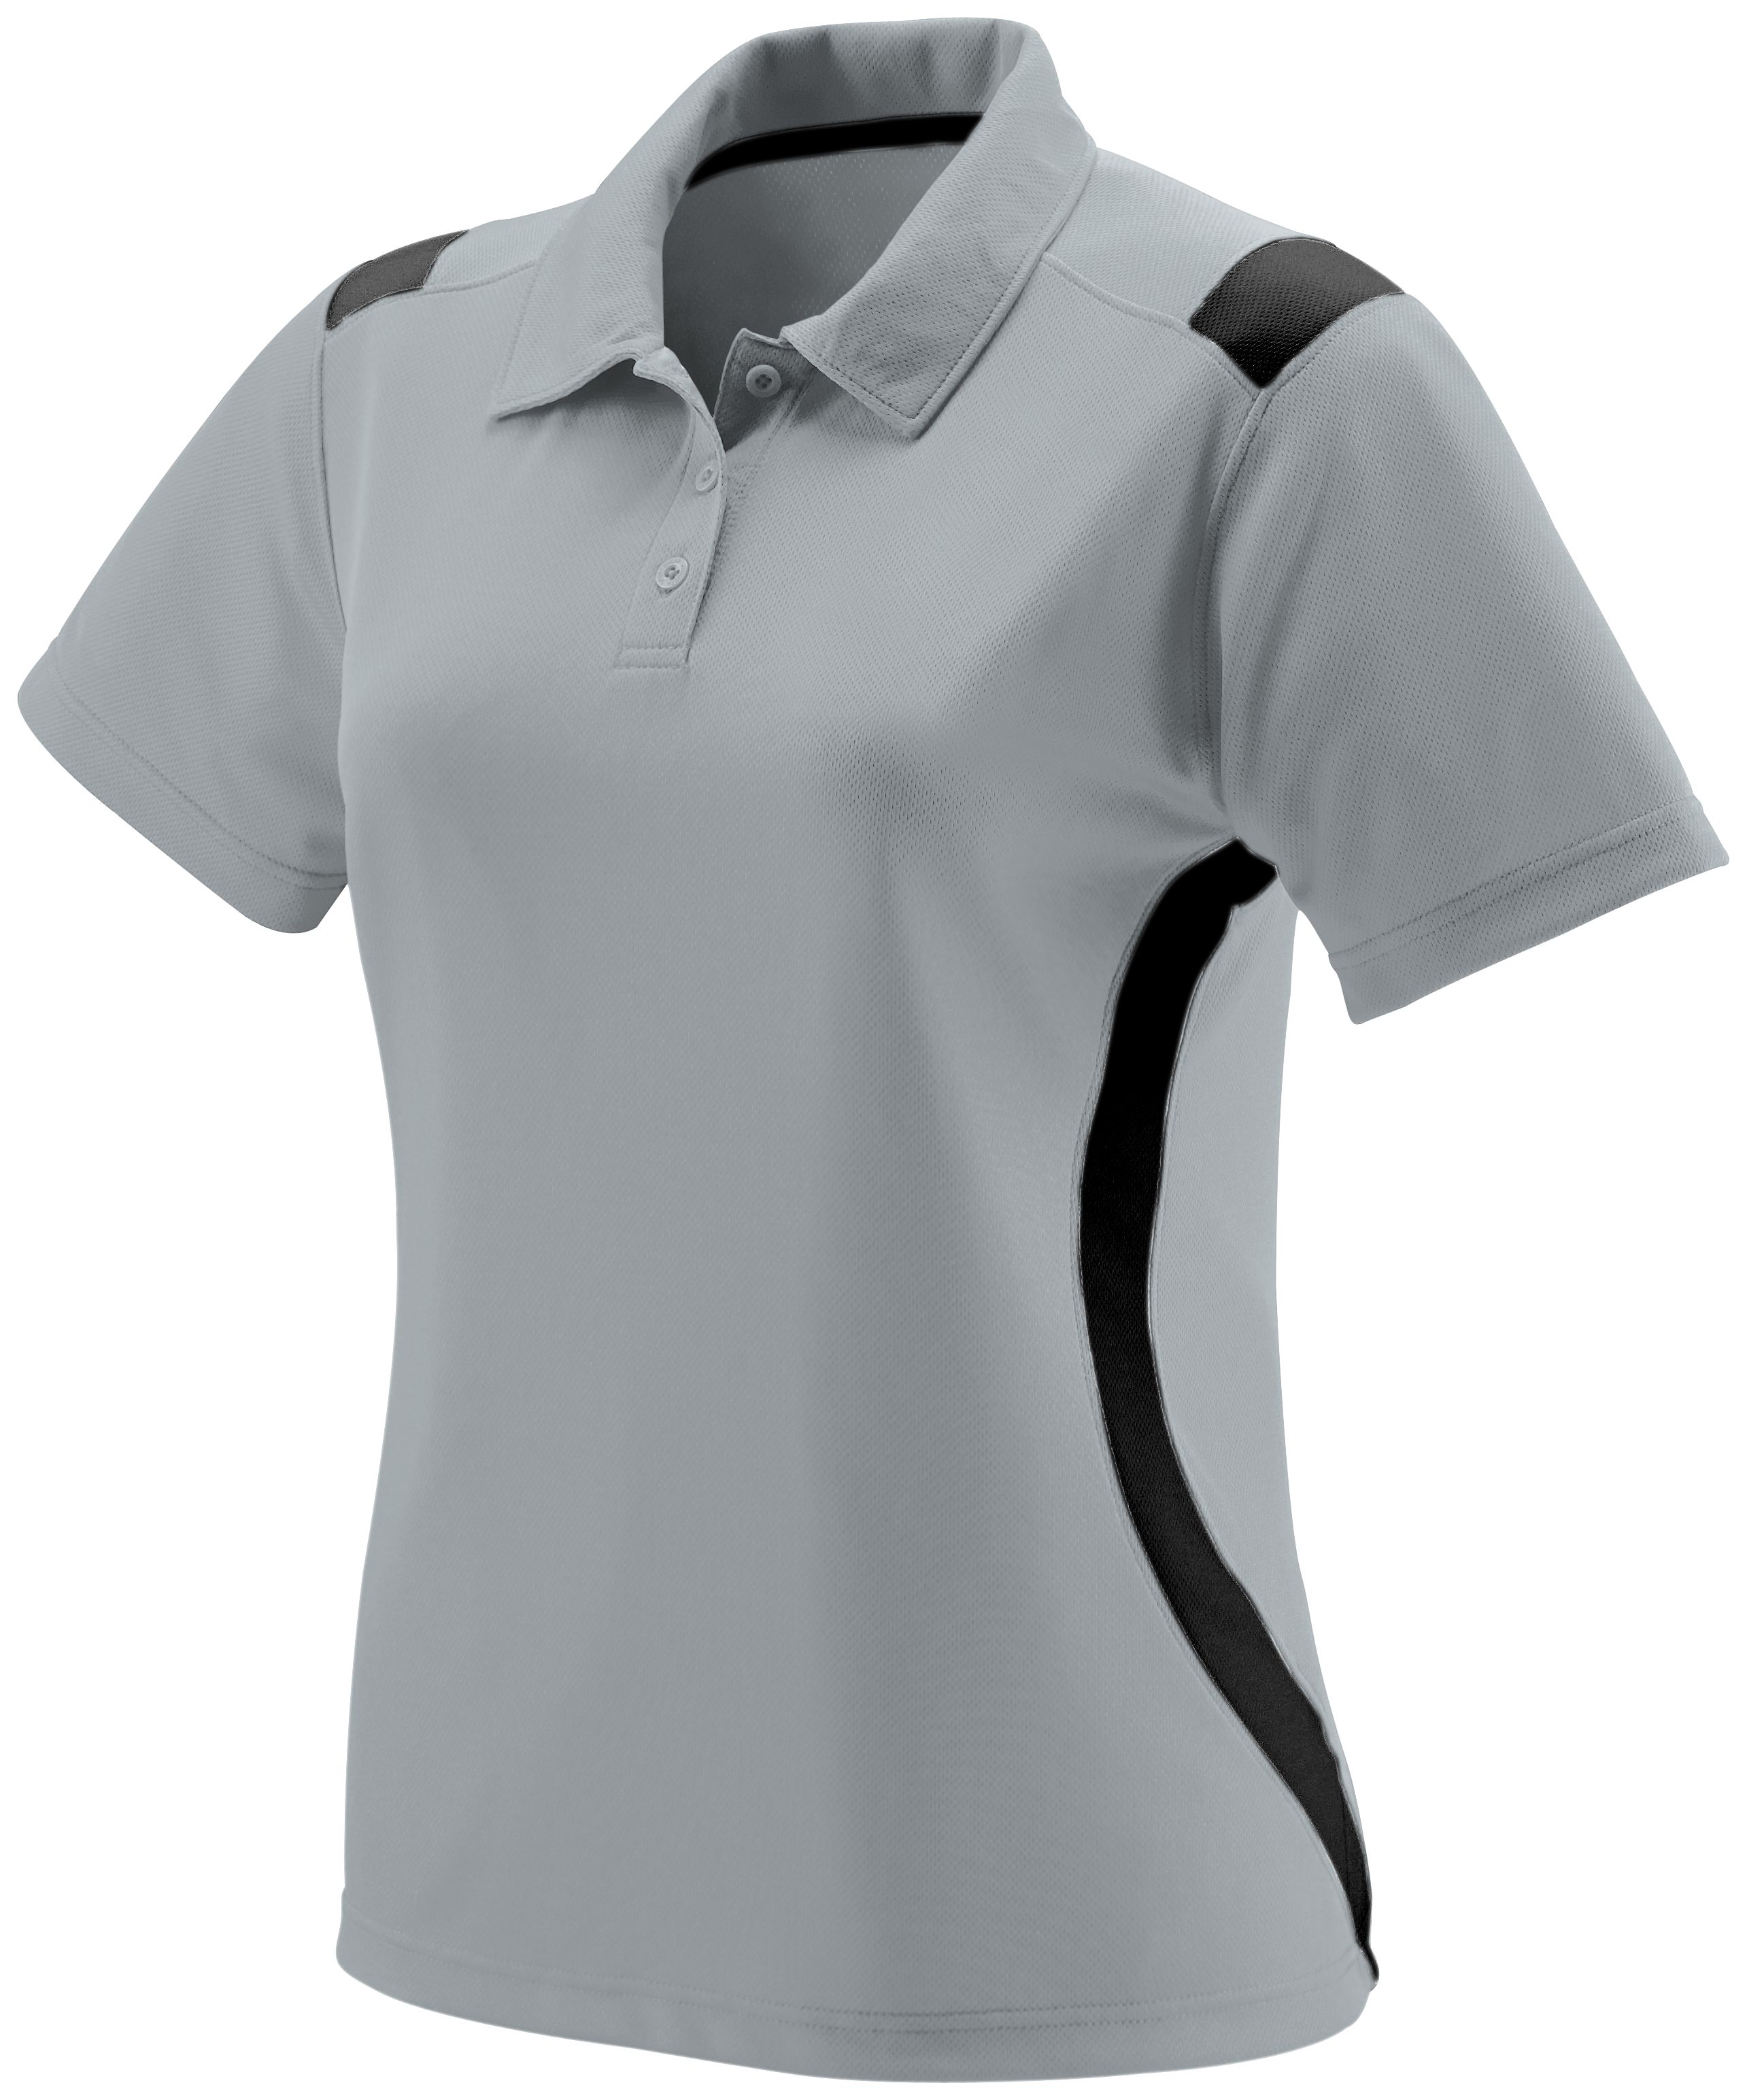 Ladies All-Conference Polo - Silver/black